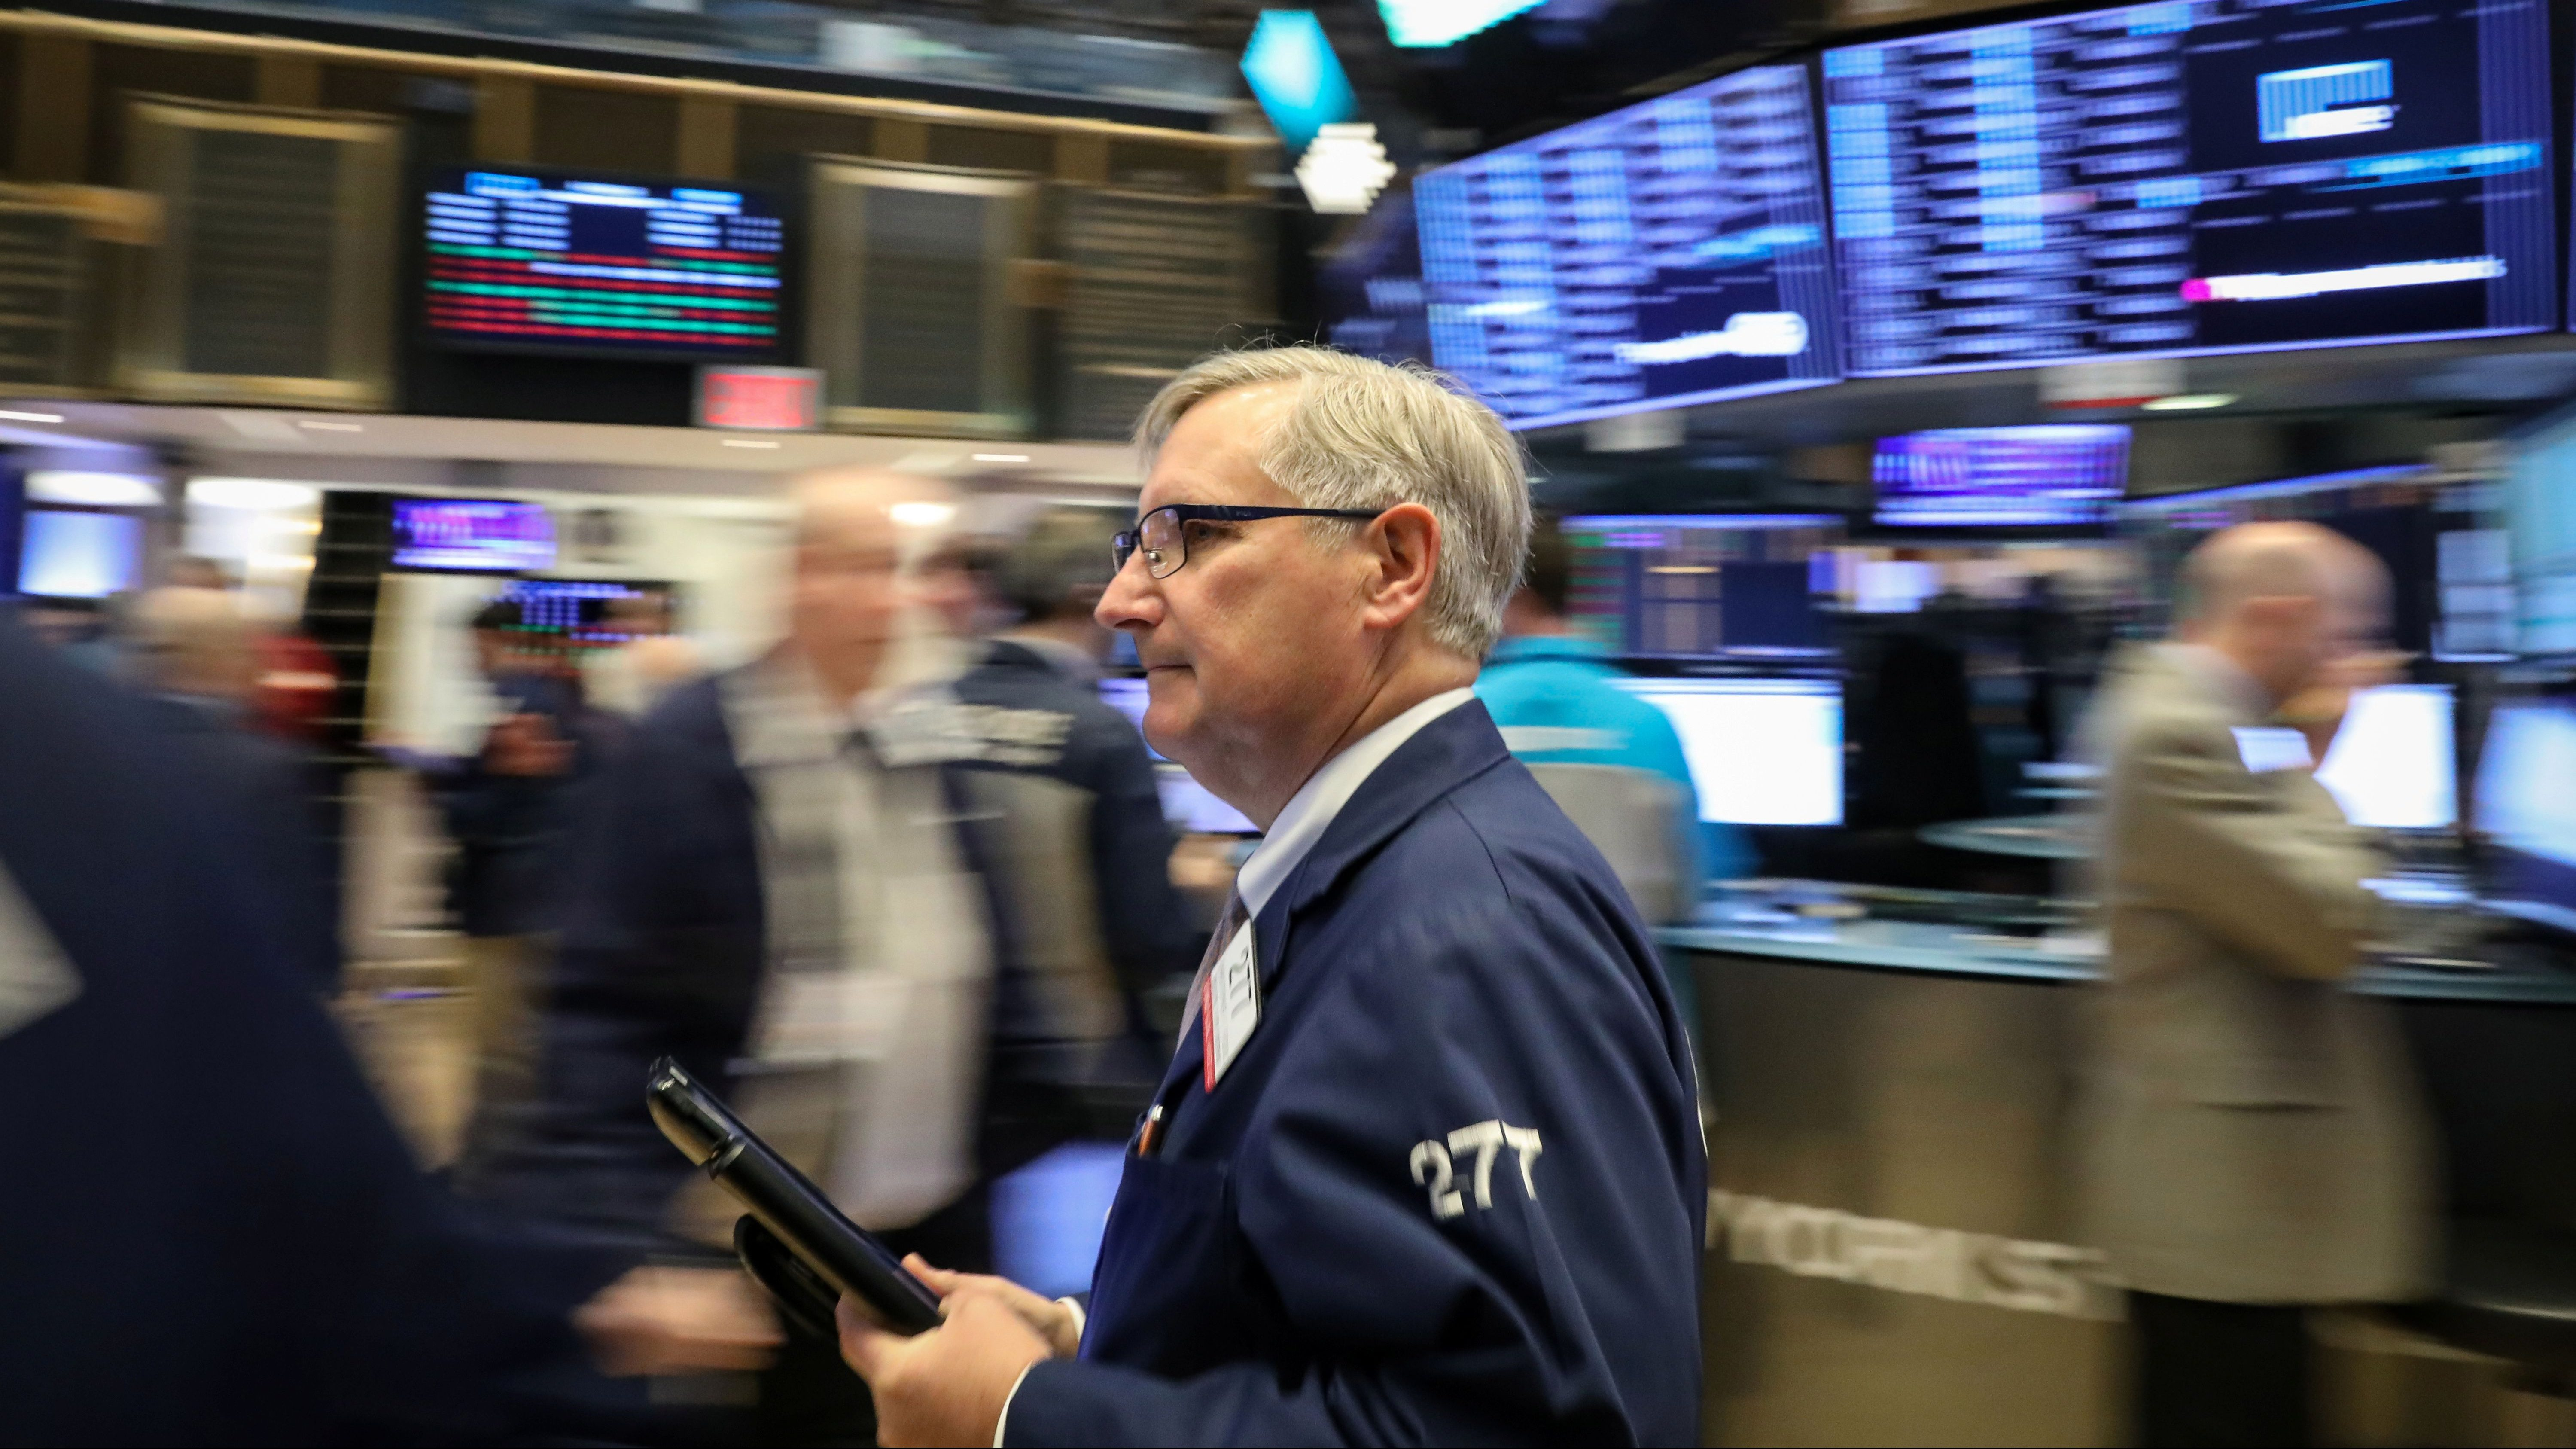 Traders work on the floor of the New York Stock Exchange (NYSE) in New York, U.S., February 8, 2019.